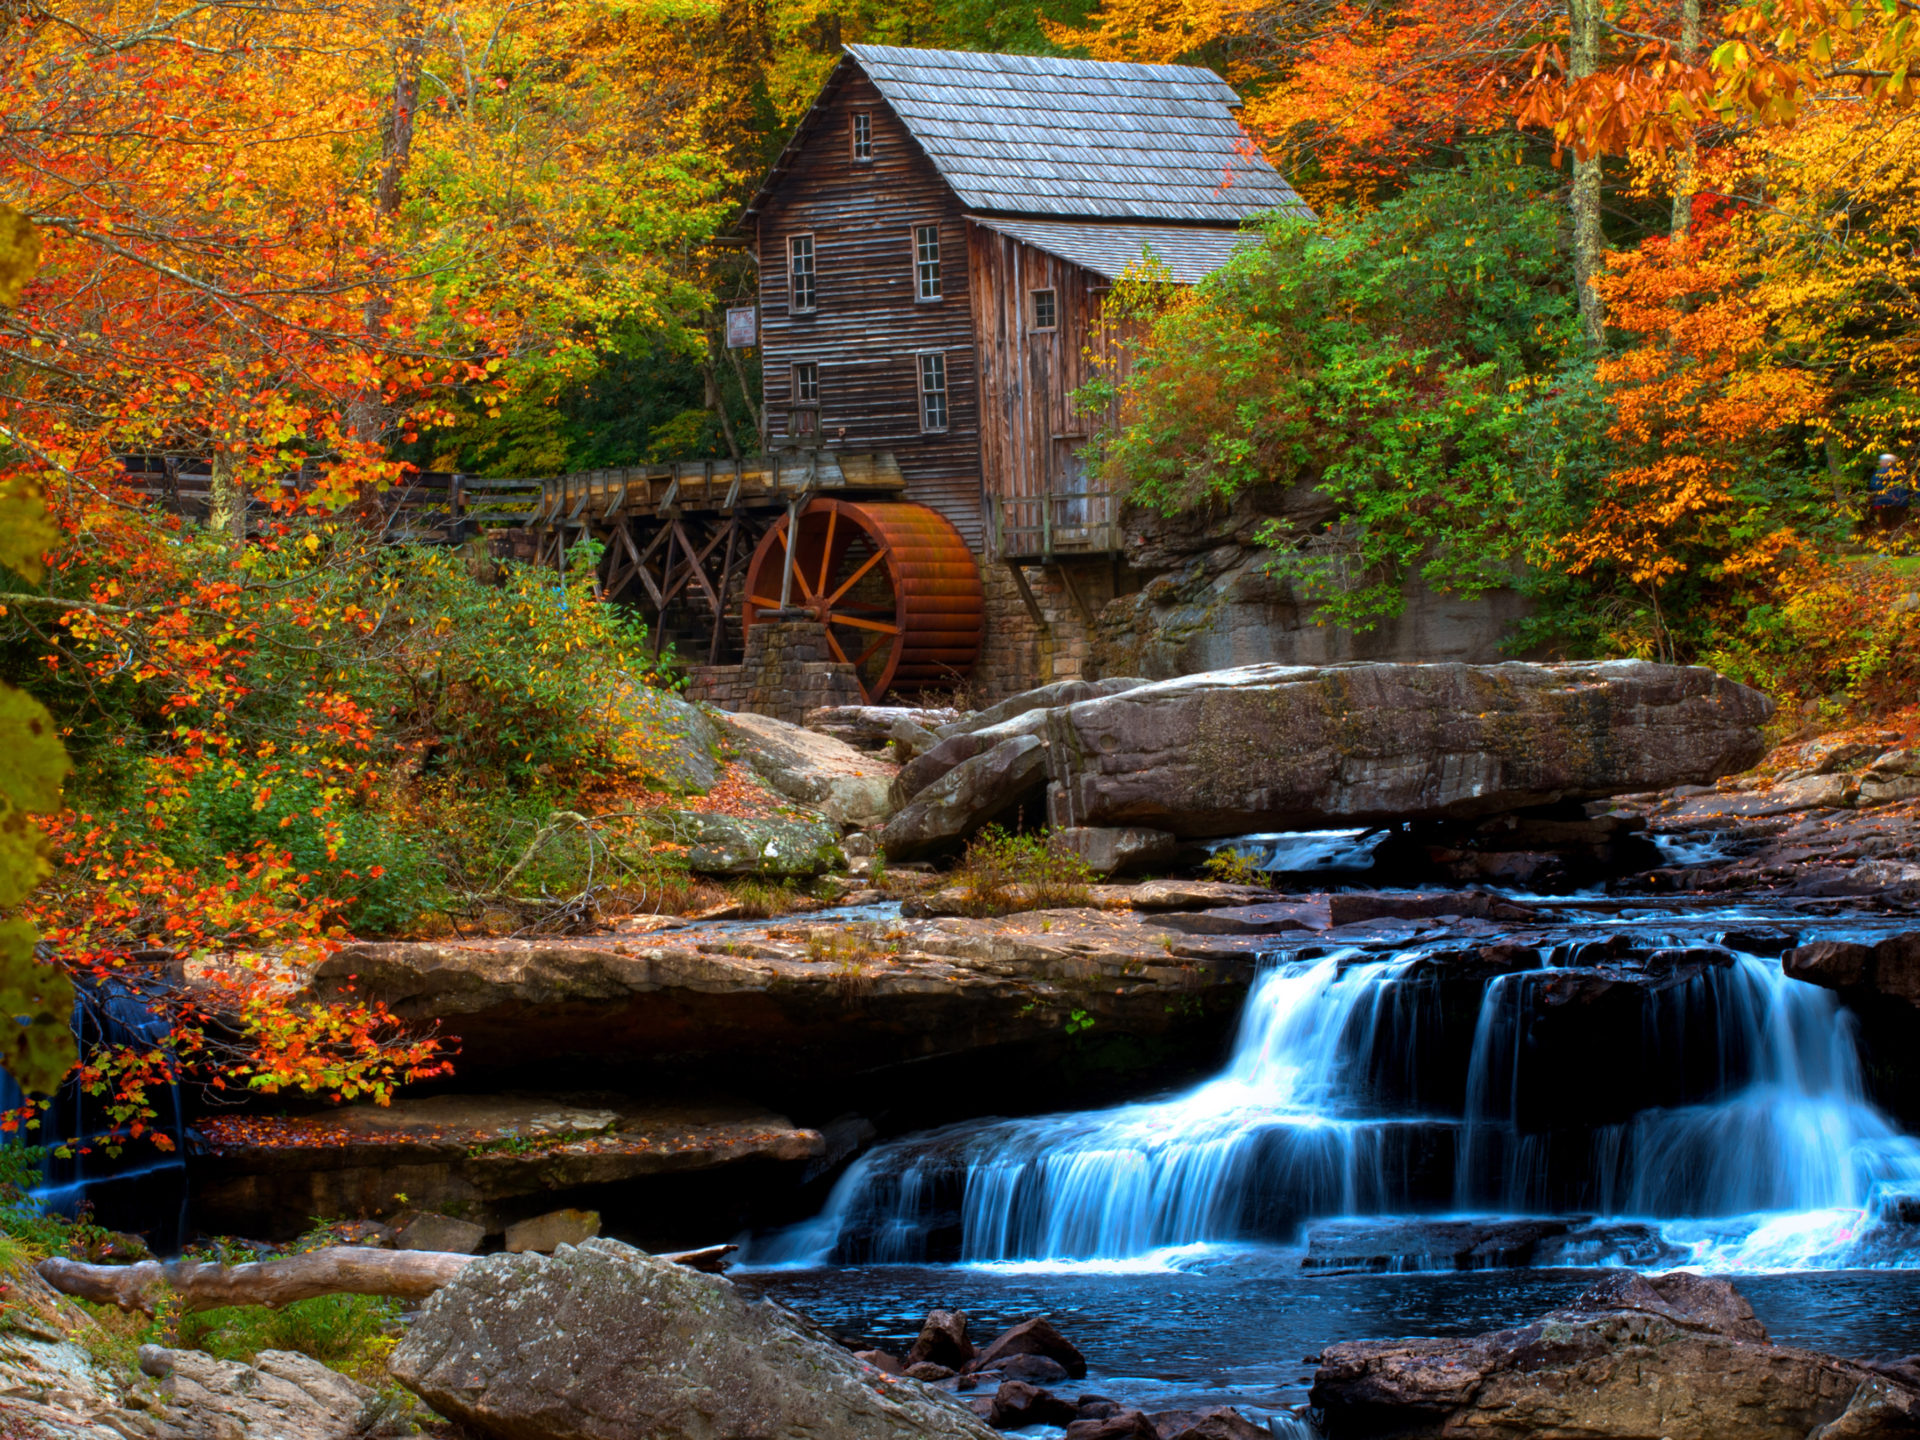 Iphone Wallpaper Nature Hd Old Wooden Mill Water Flow Rock Waterfall Hd Wallpaper For